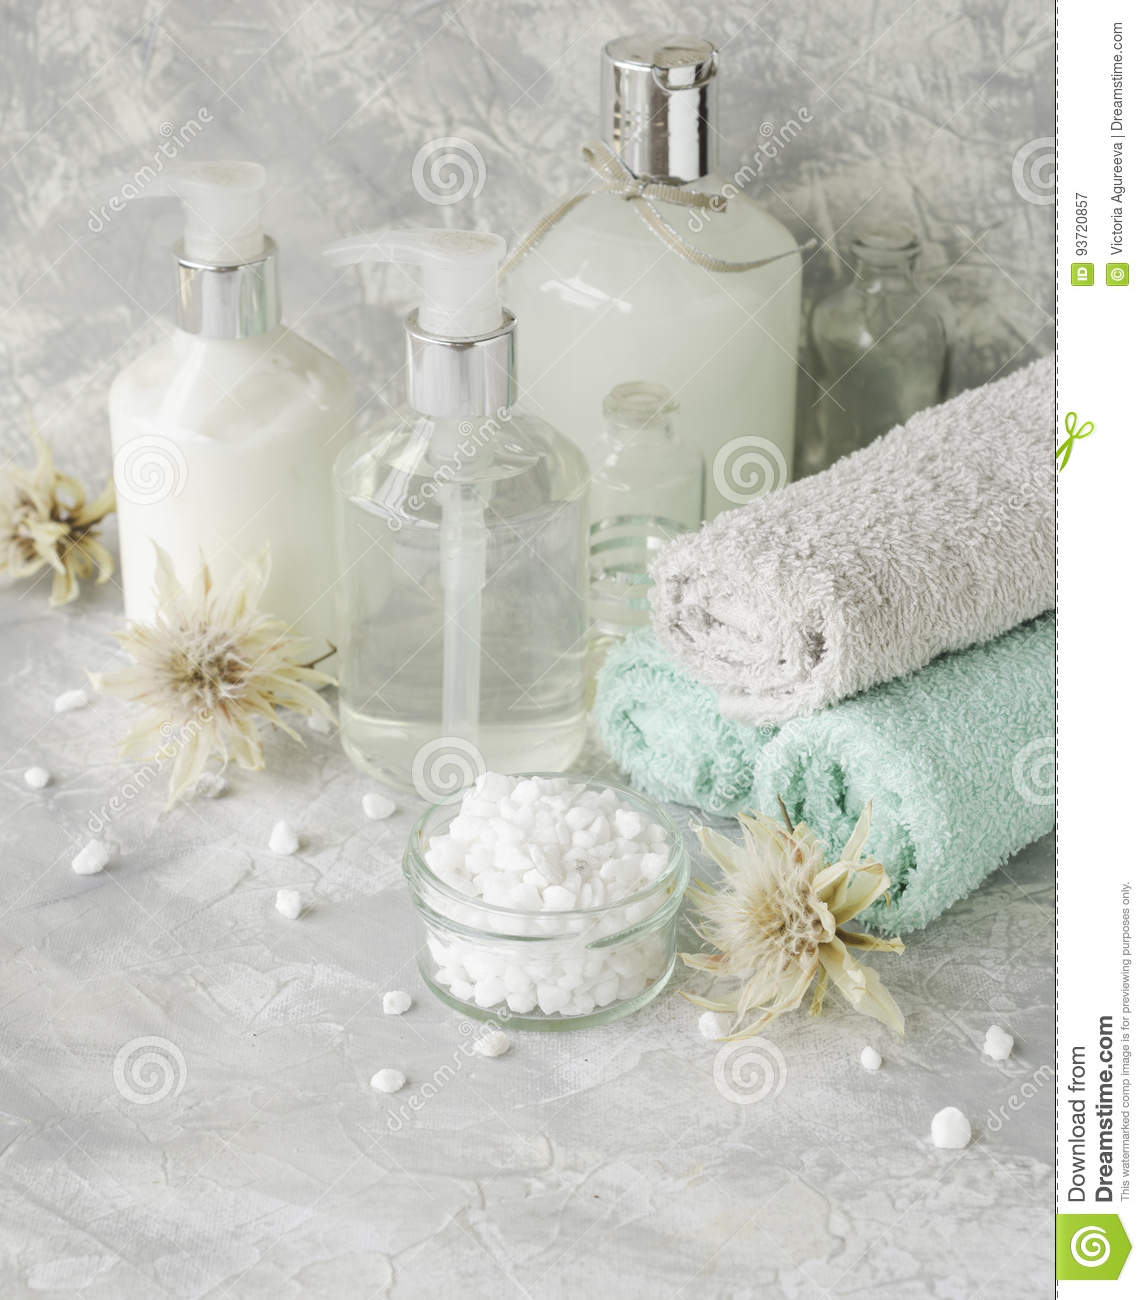 Spa Set On A White Marble Table With A Stack Of Towels, Selective ...